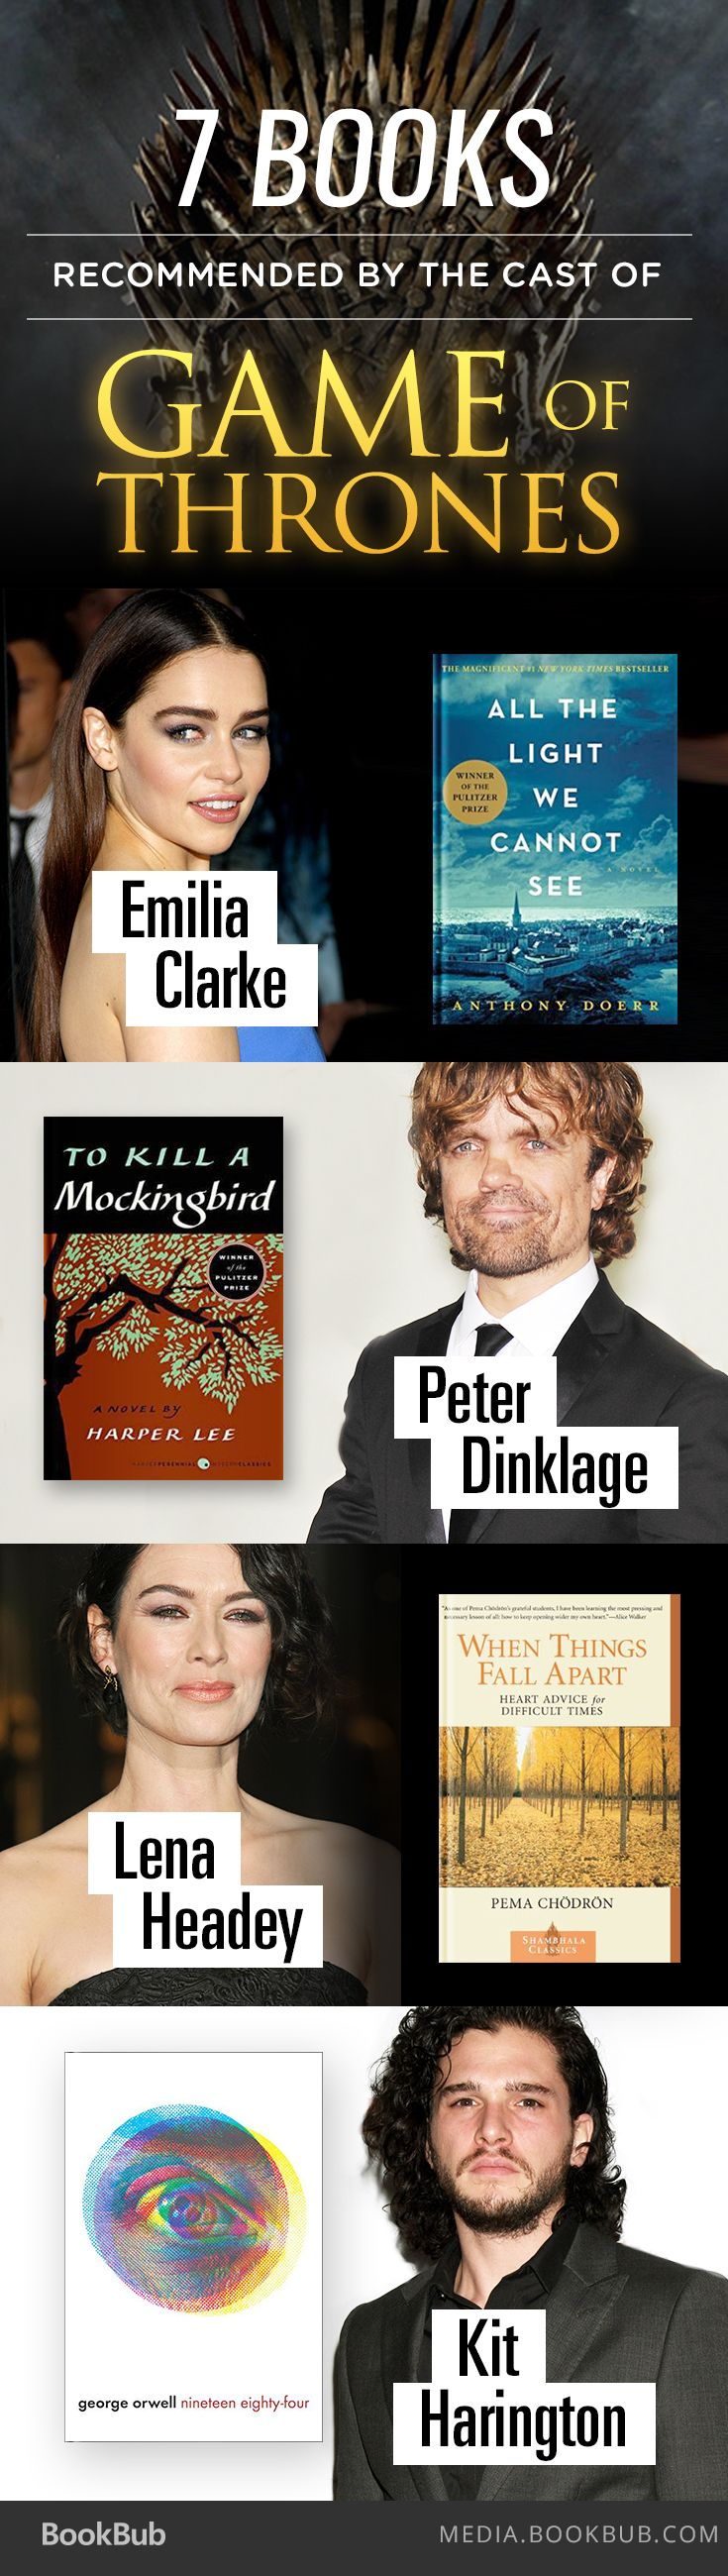 7 books recommended by the Game of Thrones cast.